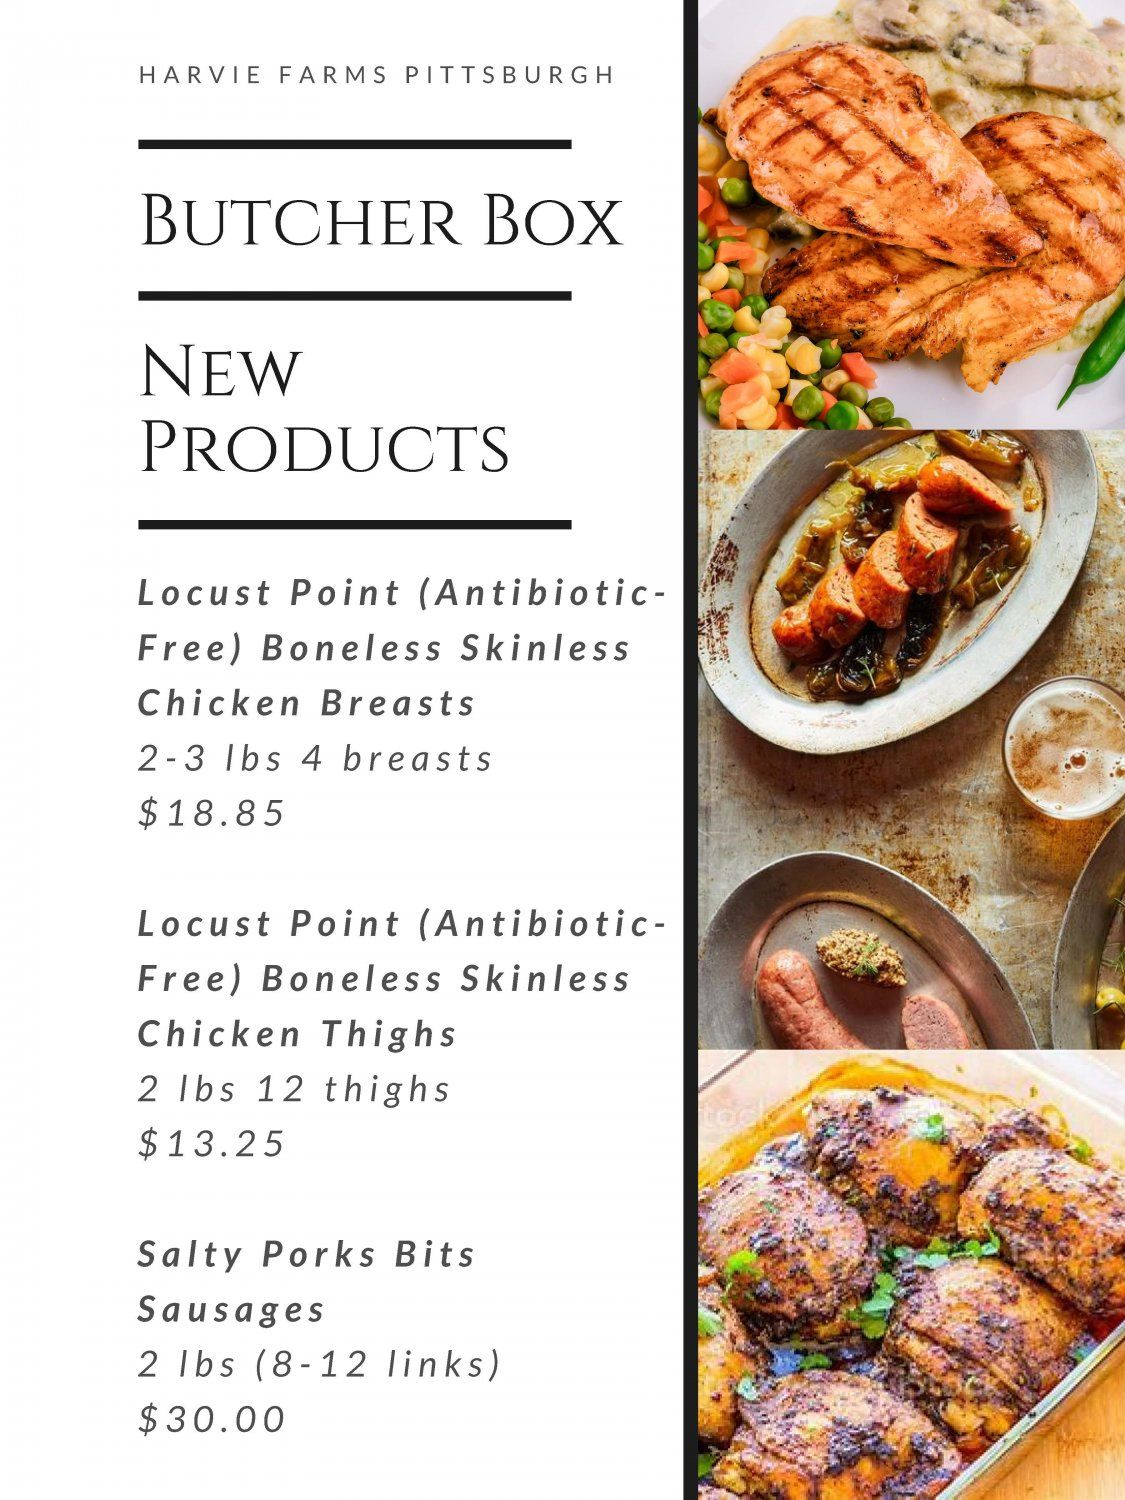 Butcher Box Happenings for Week of February 15th, 2021